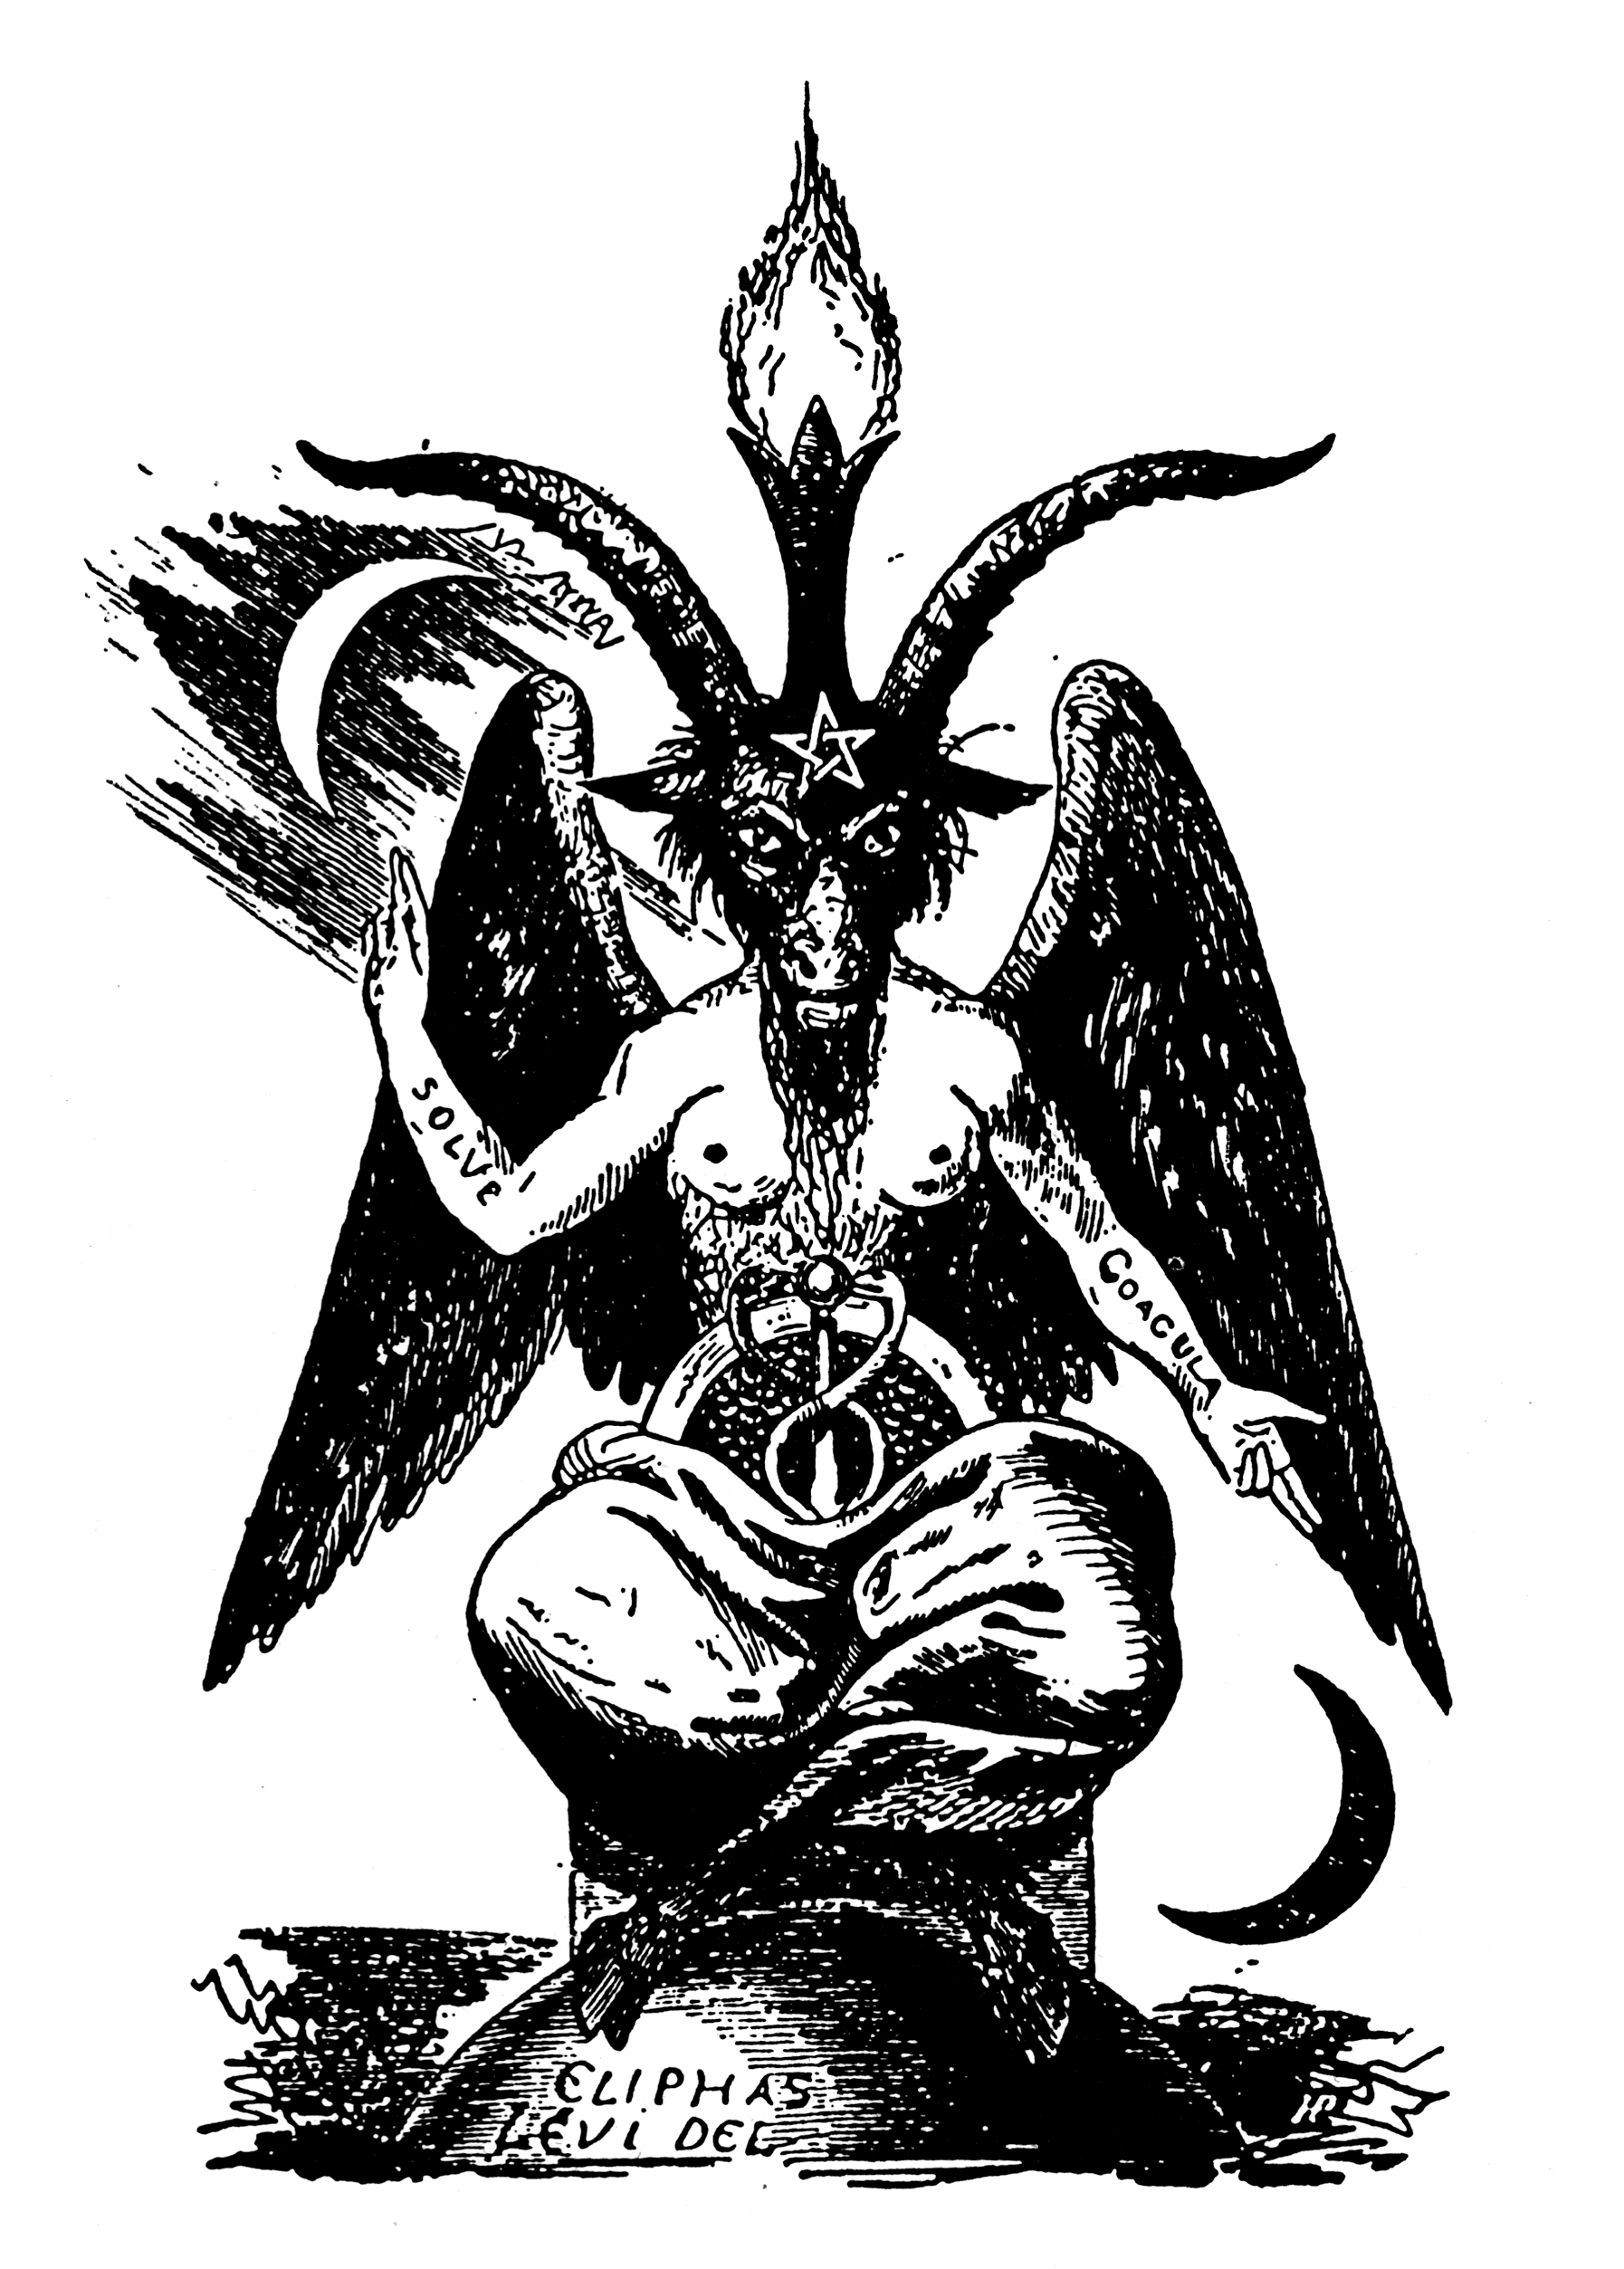 Baphomet' - The infamous 19th century image of a Sabbatic